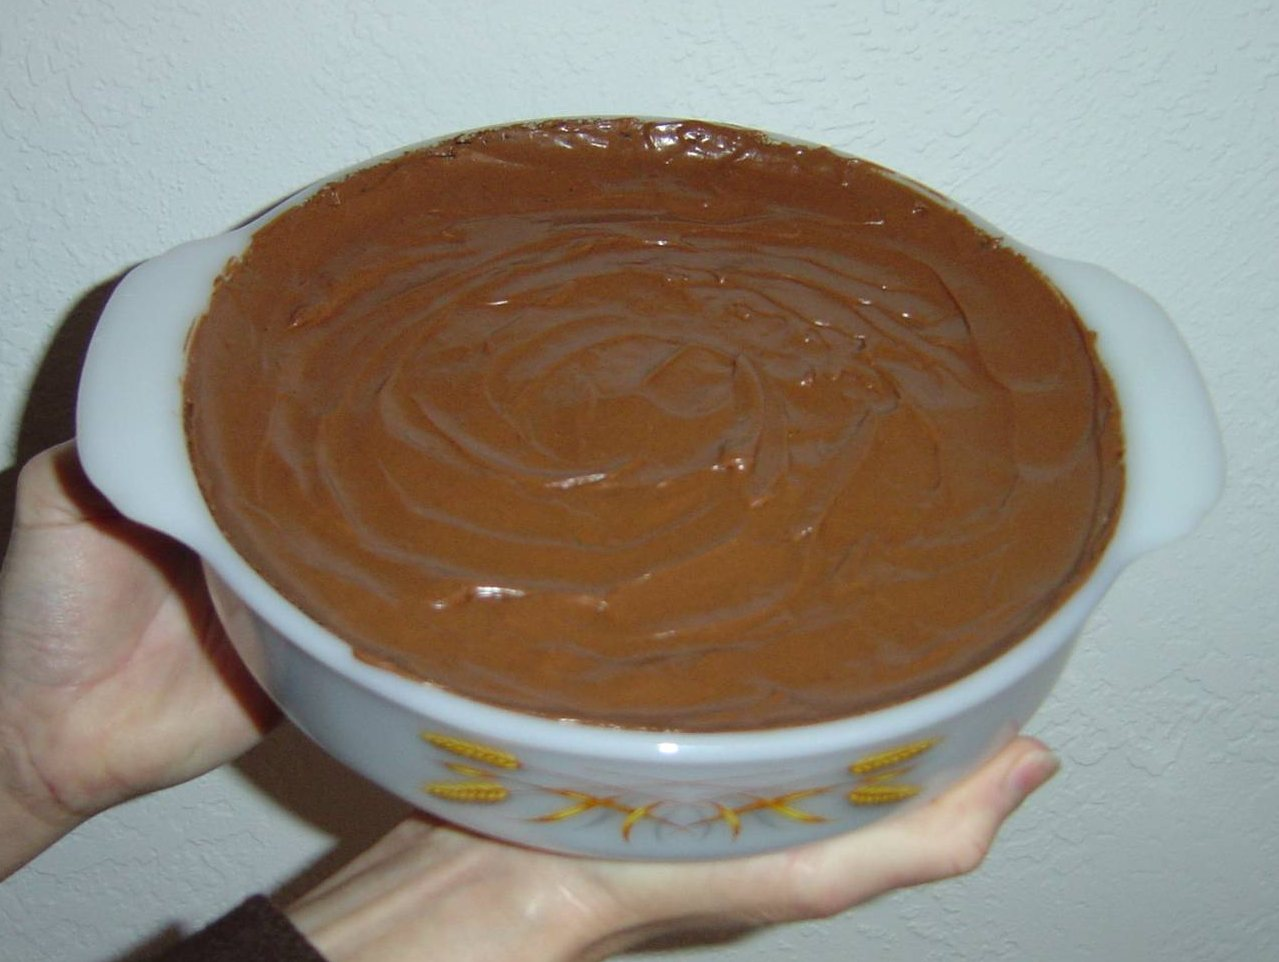 five-minute-microwave chocolate cake unbaked